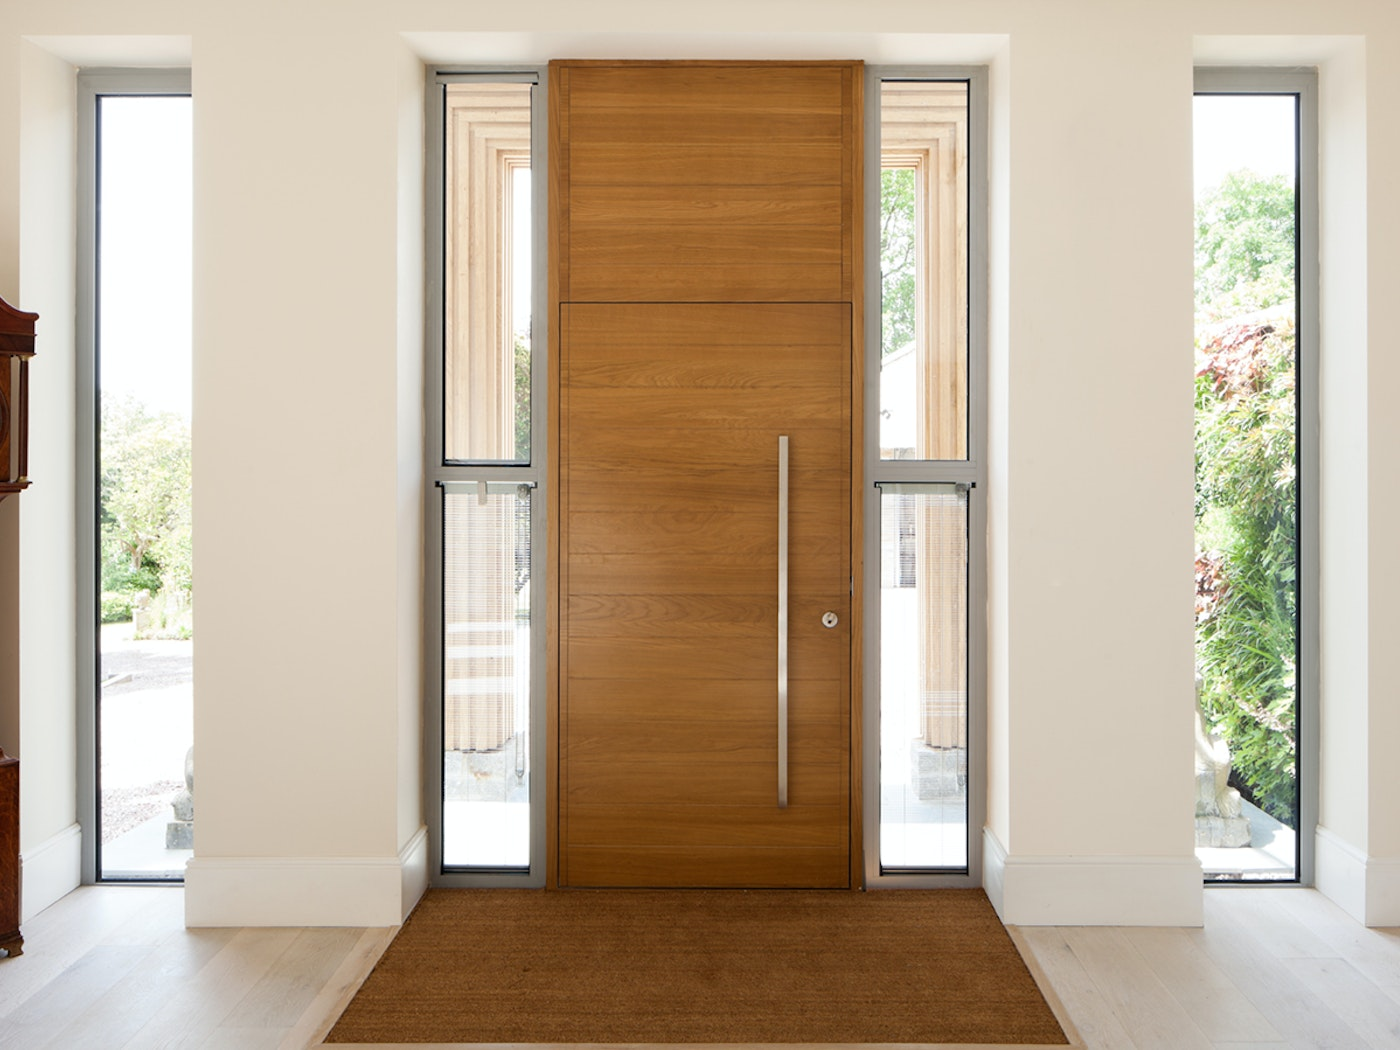 Urban Front doors can be fit into any architectural glazing or glass walling